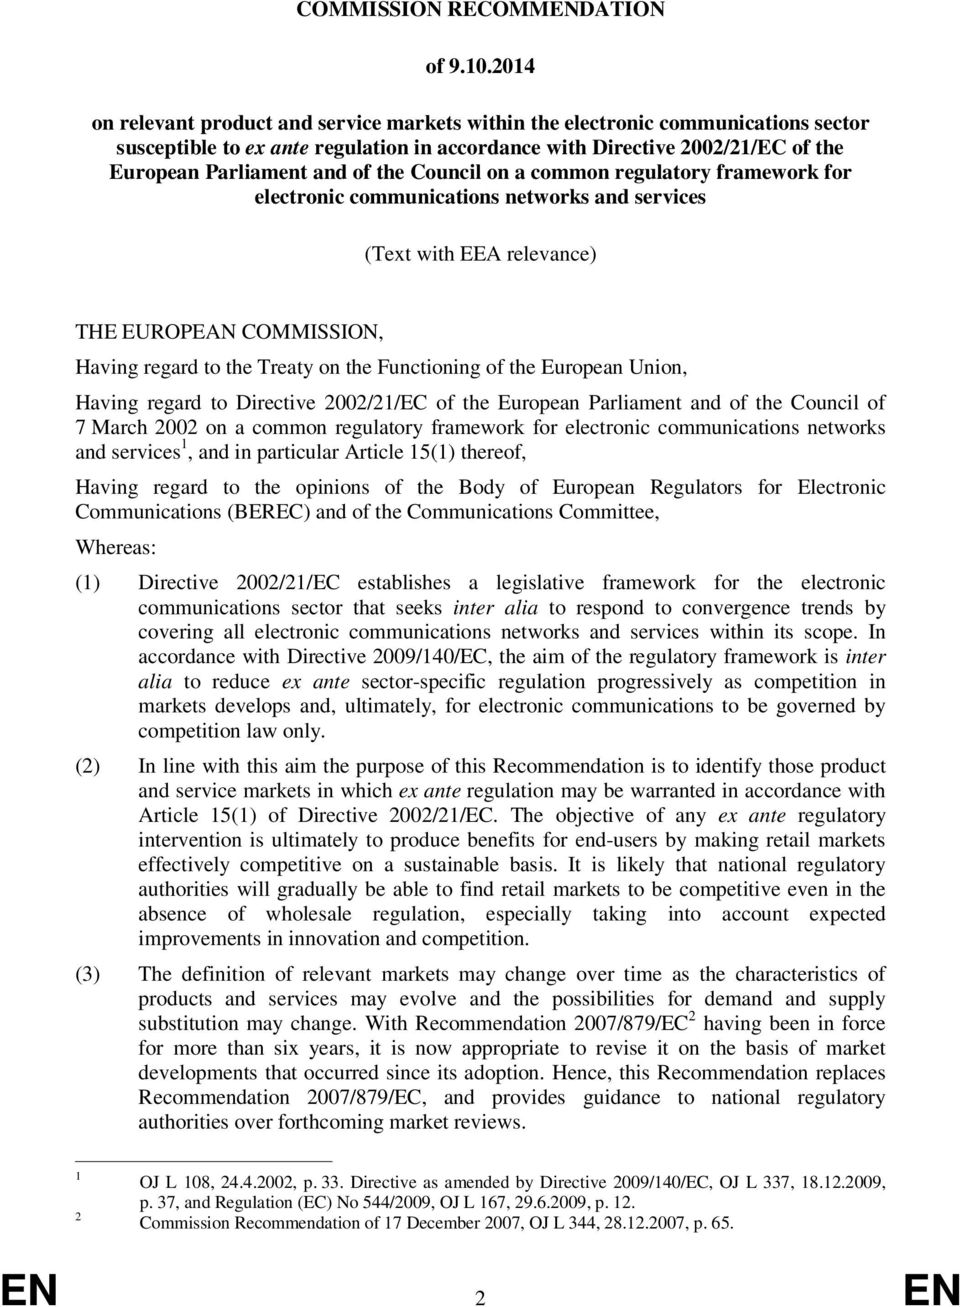 the Council on a common regulatory framework for electronic communications networks and services (Text with EEA relevance) THE EUROPEAN COMMISSION, Having regard to the Treaty on the Functioning of